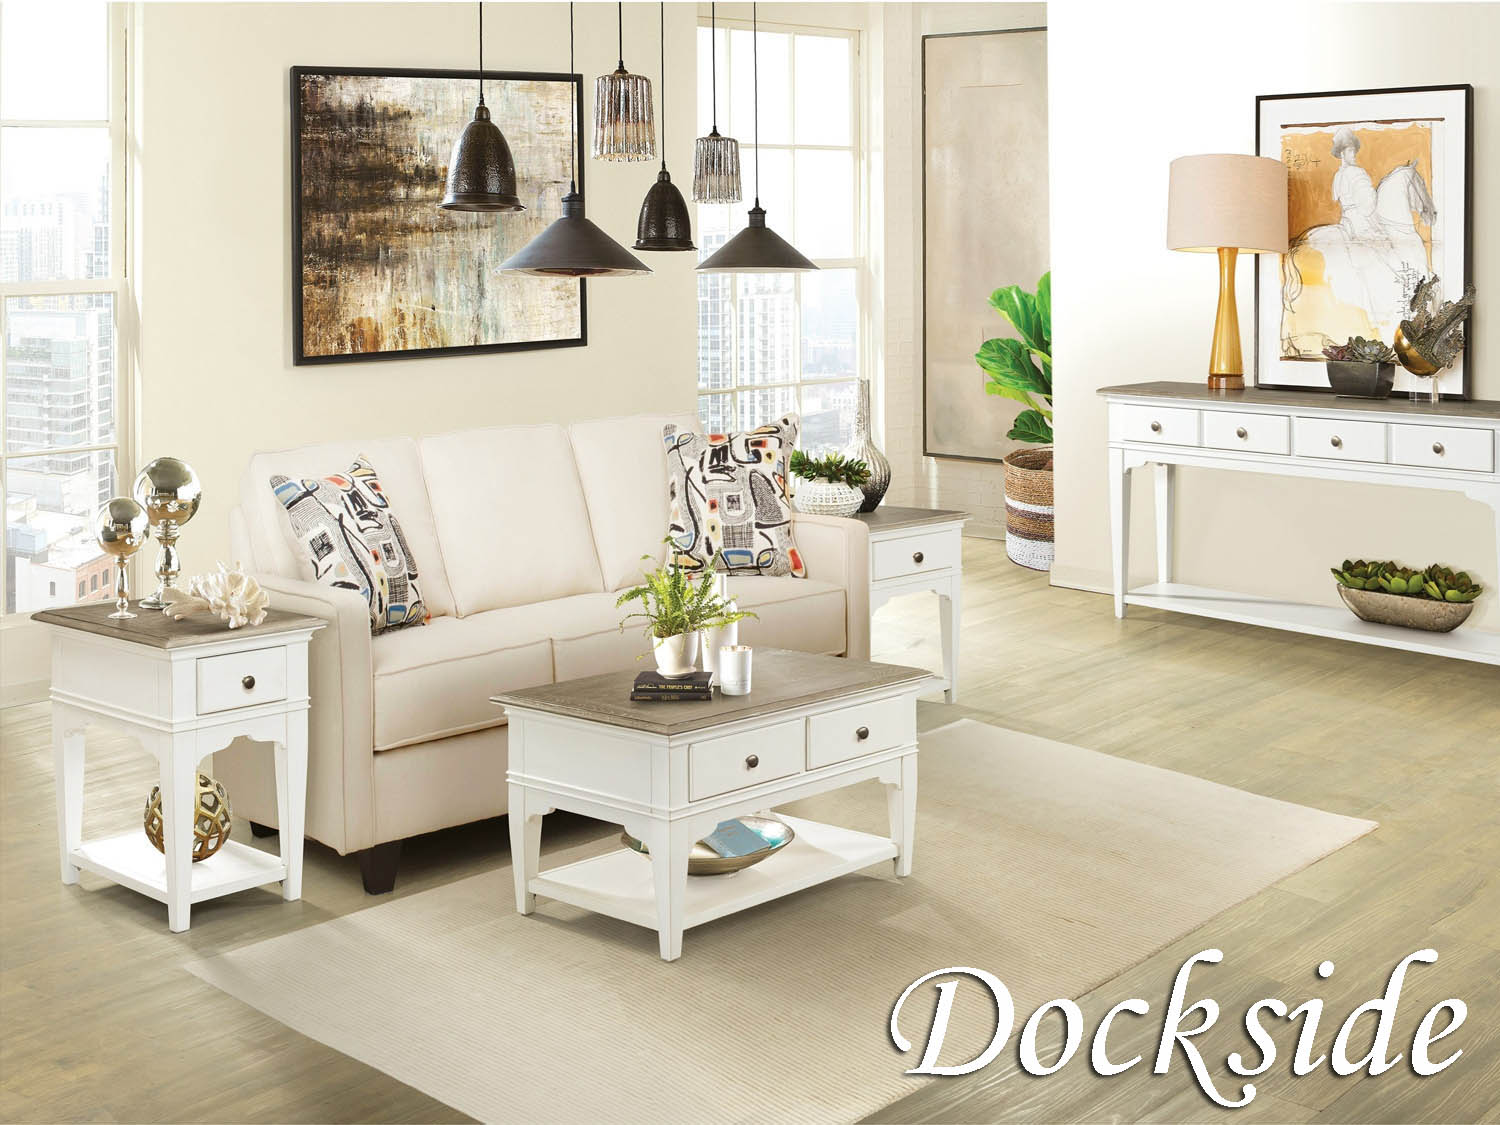 Occasional Tables, Table, Cocktail, Coffee, End, Chairside, Sofa, Dockside, Living Room, Barbo's Furniture